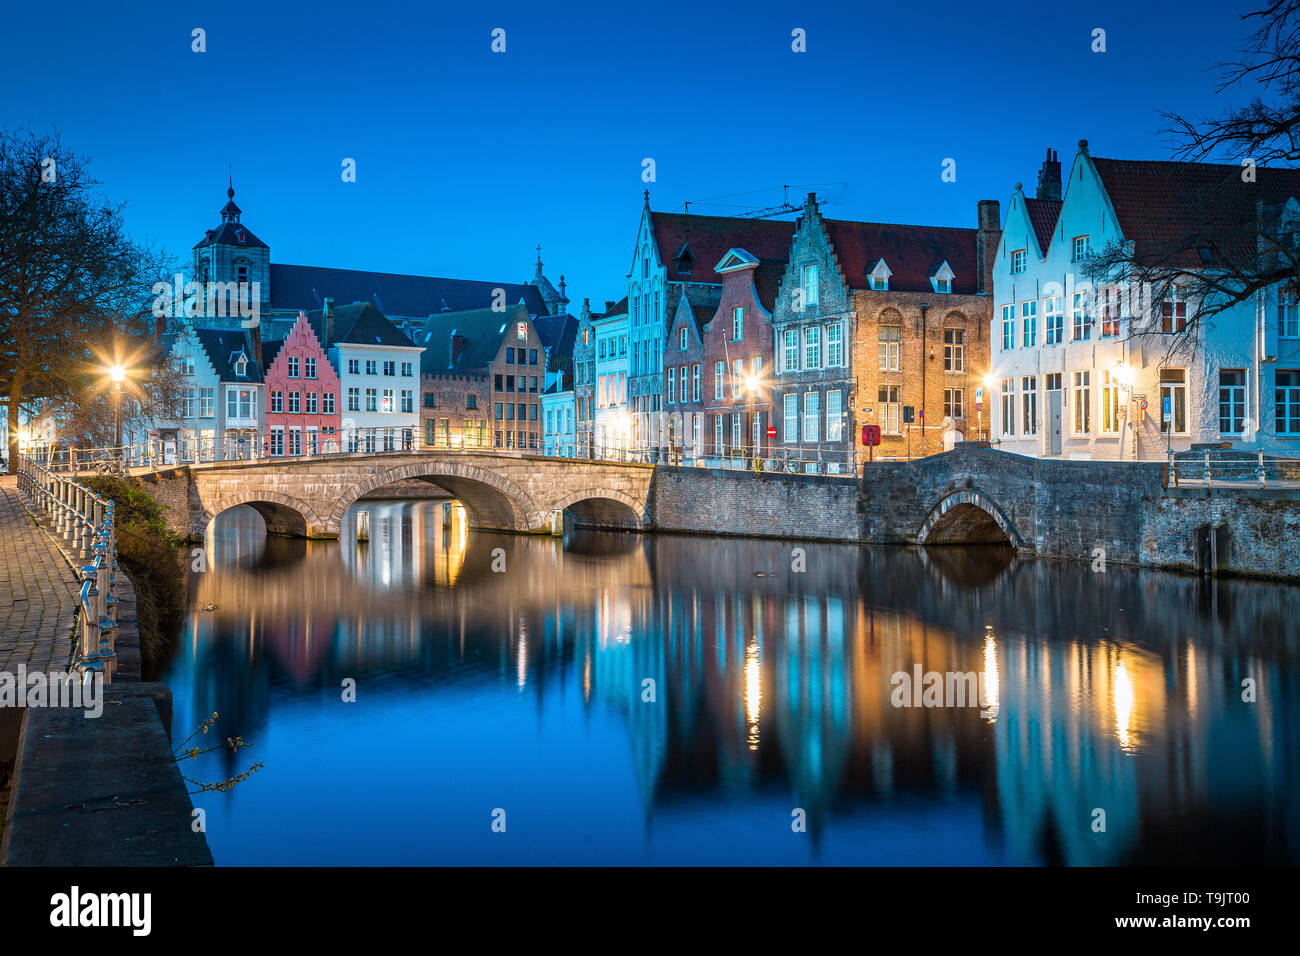 Classic panoramic twilight view of the historic city center of Brugge during beautiful evening blue hour at dusk, province of West Flanders, Belgium - Stock Image